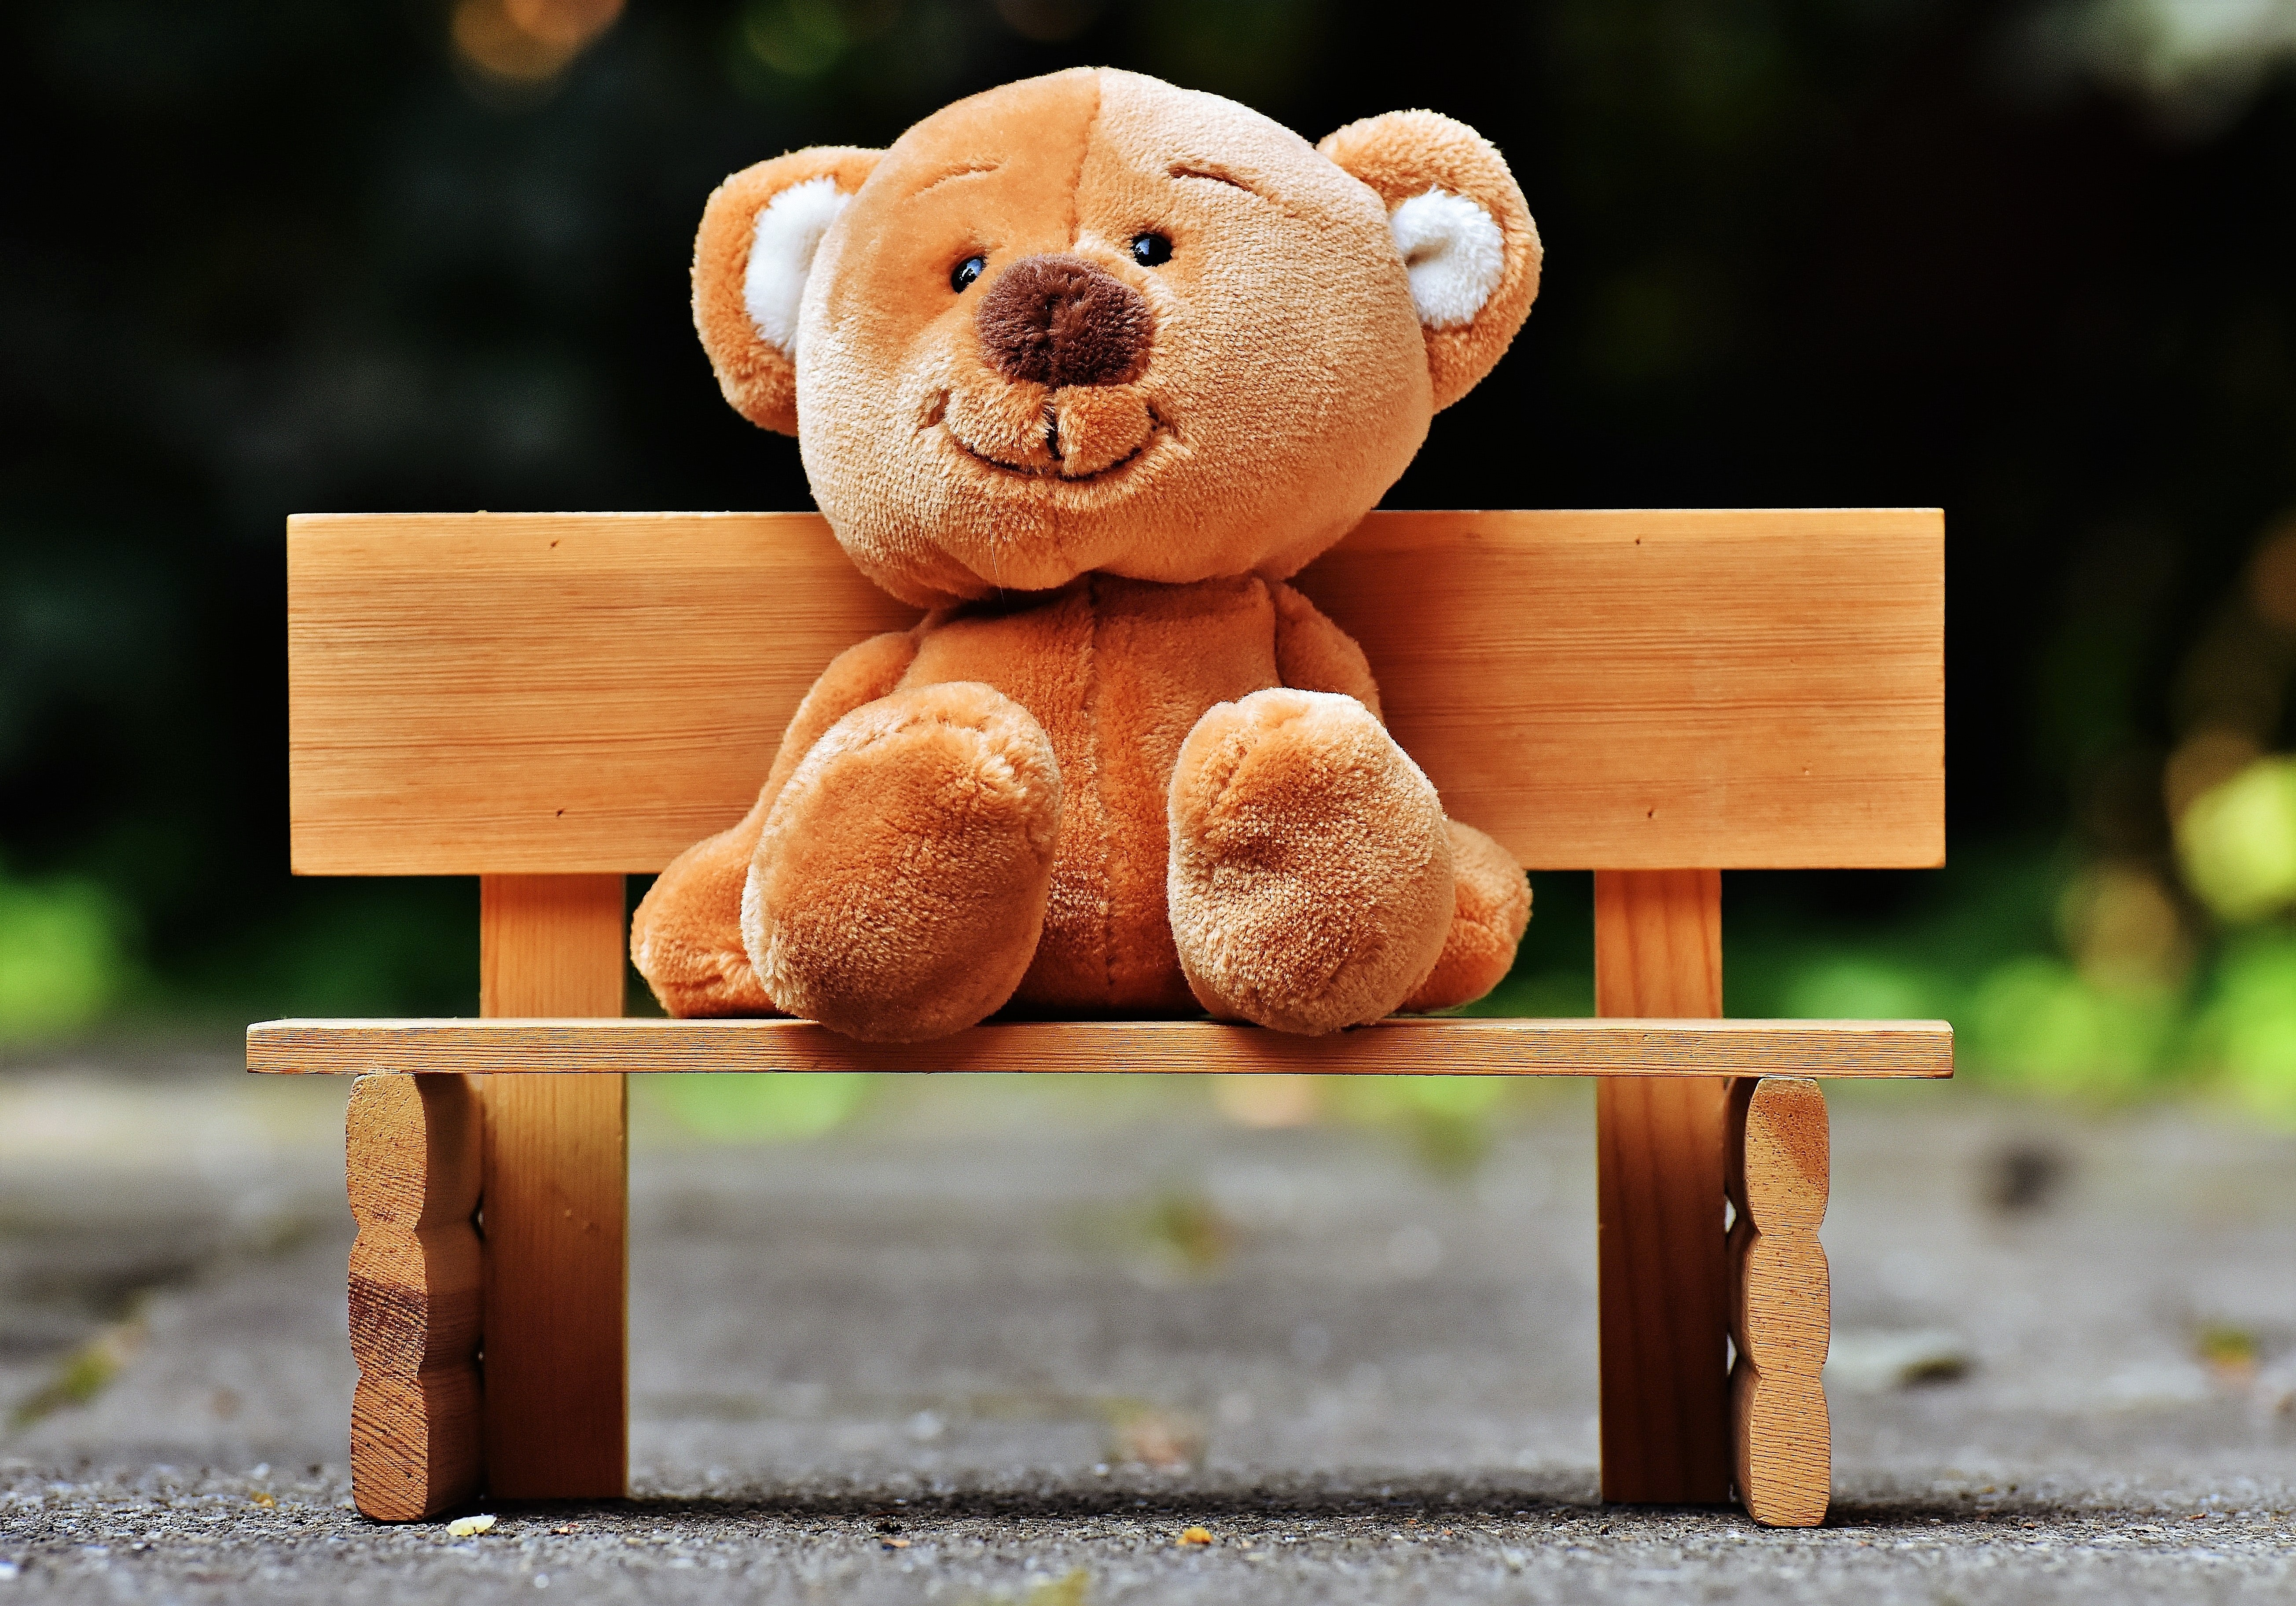 Smiling teddy bear sitting on a miniature wooden bench in a park